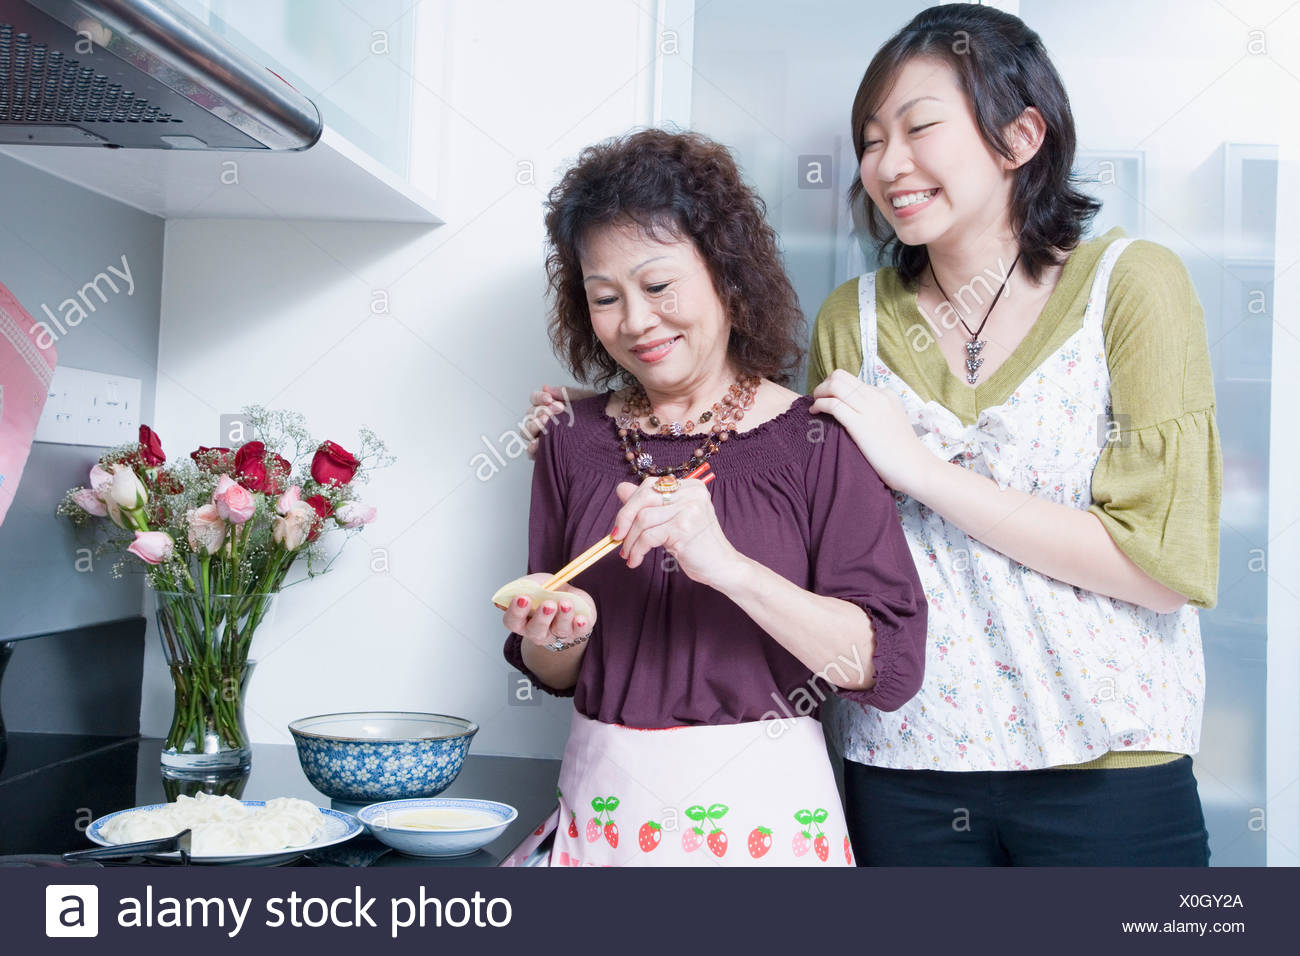 Senior woman preparing food with her granddaughter standing behind her and smiling - Stock Image